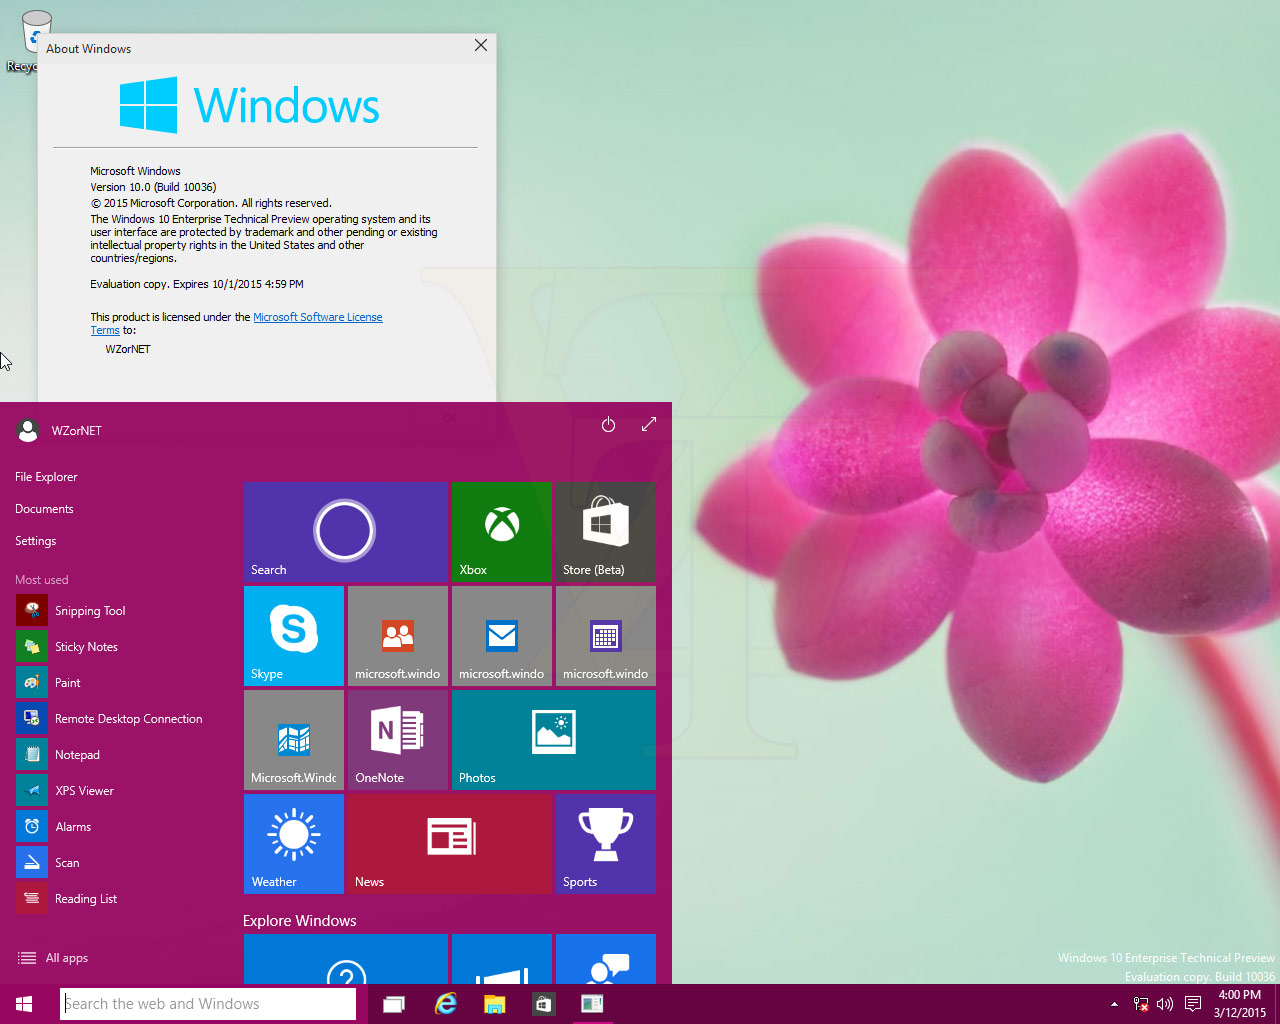 Windows 10 Build 10036 Start Menu